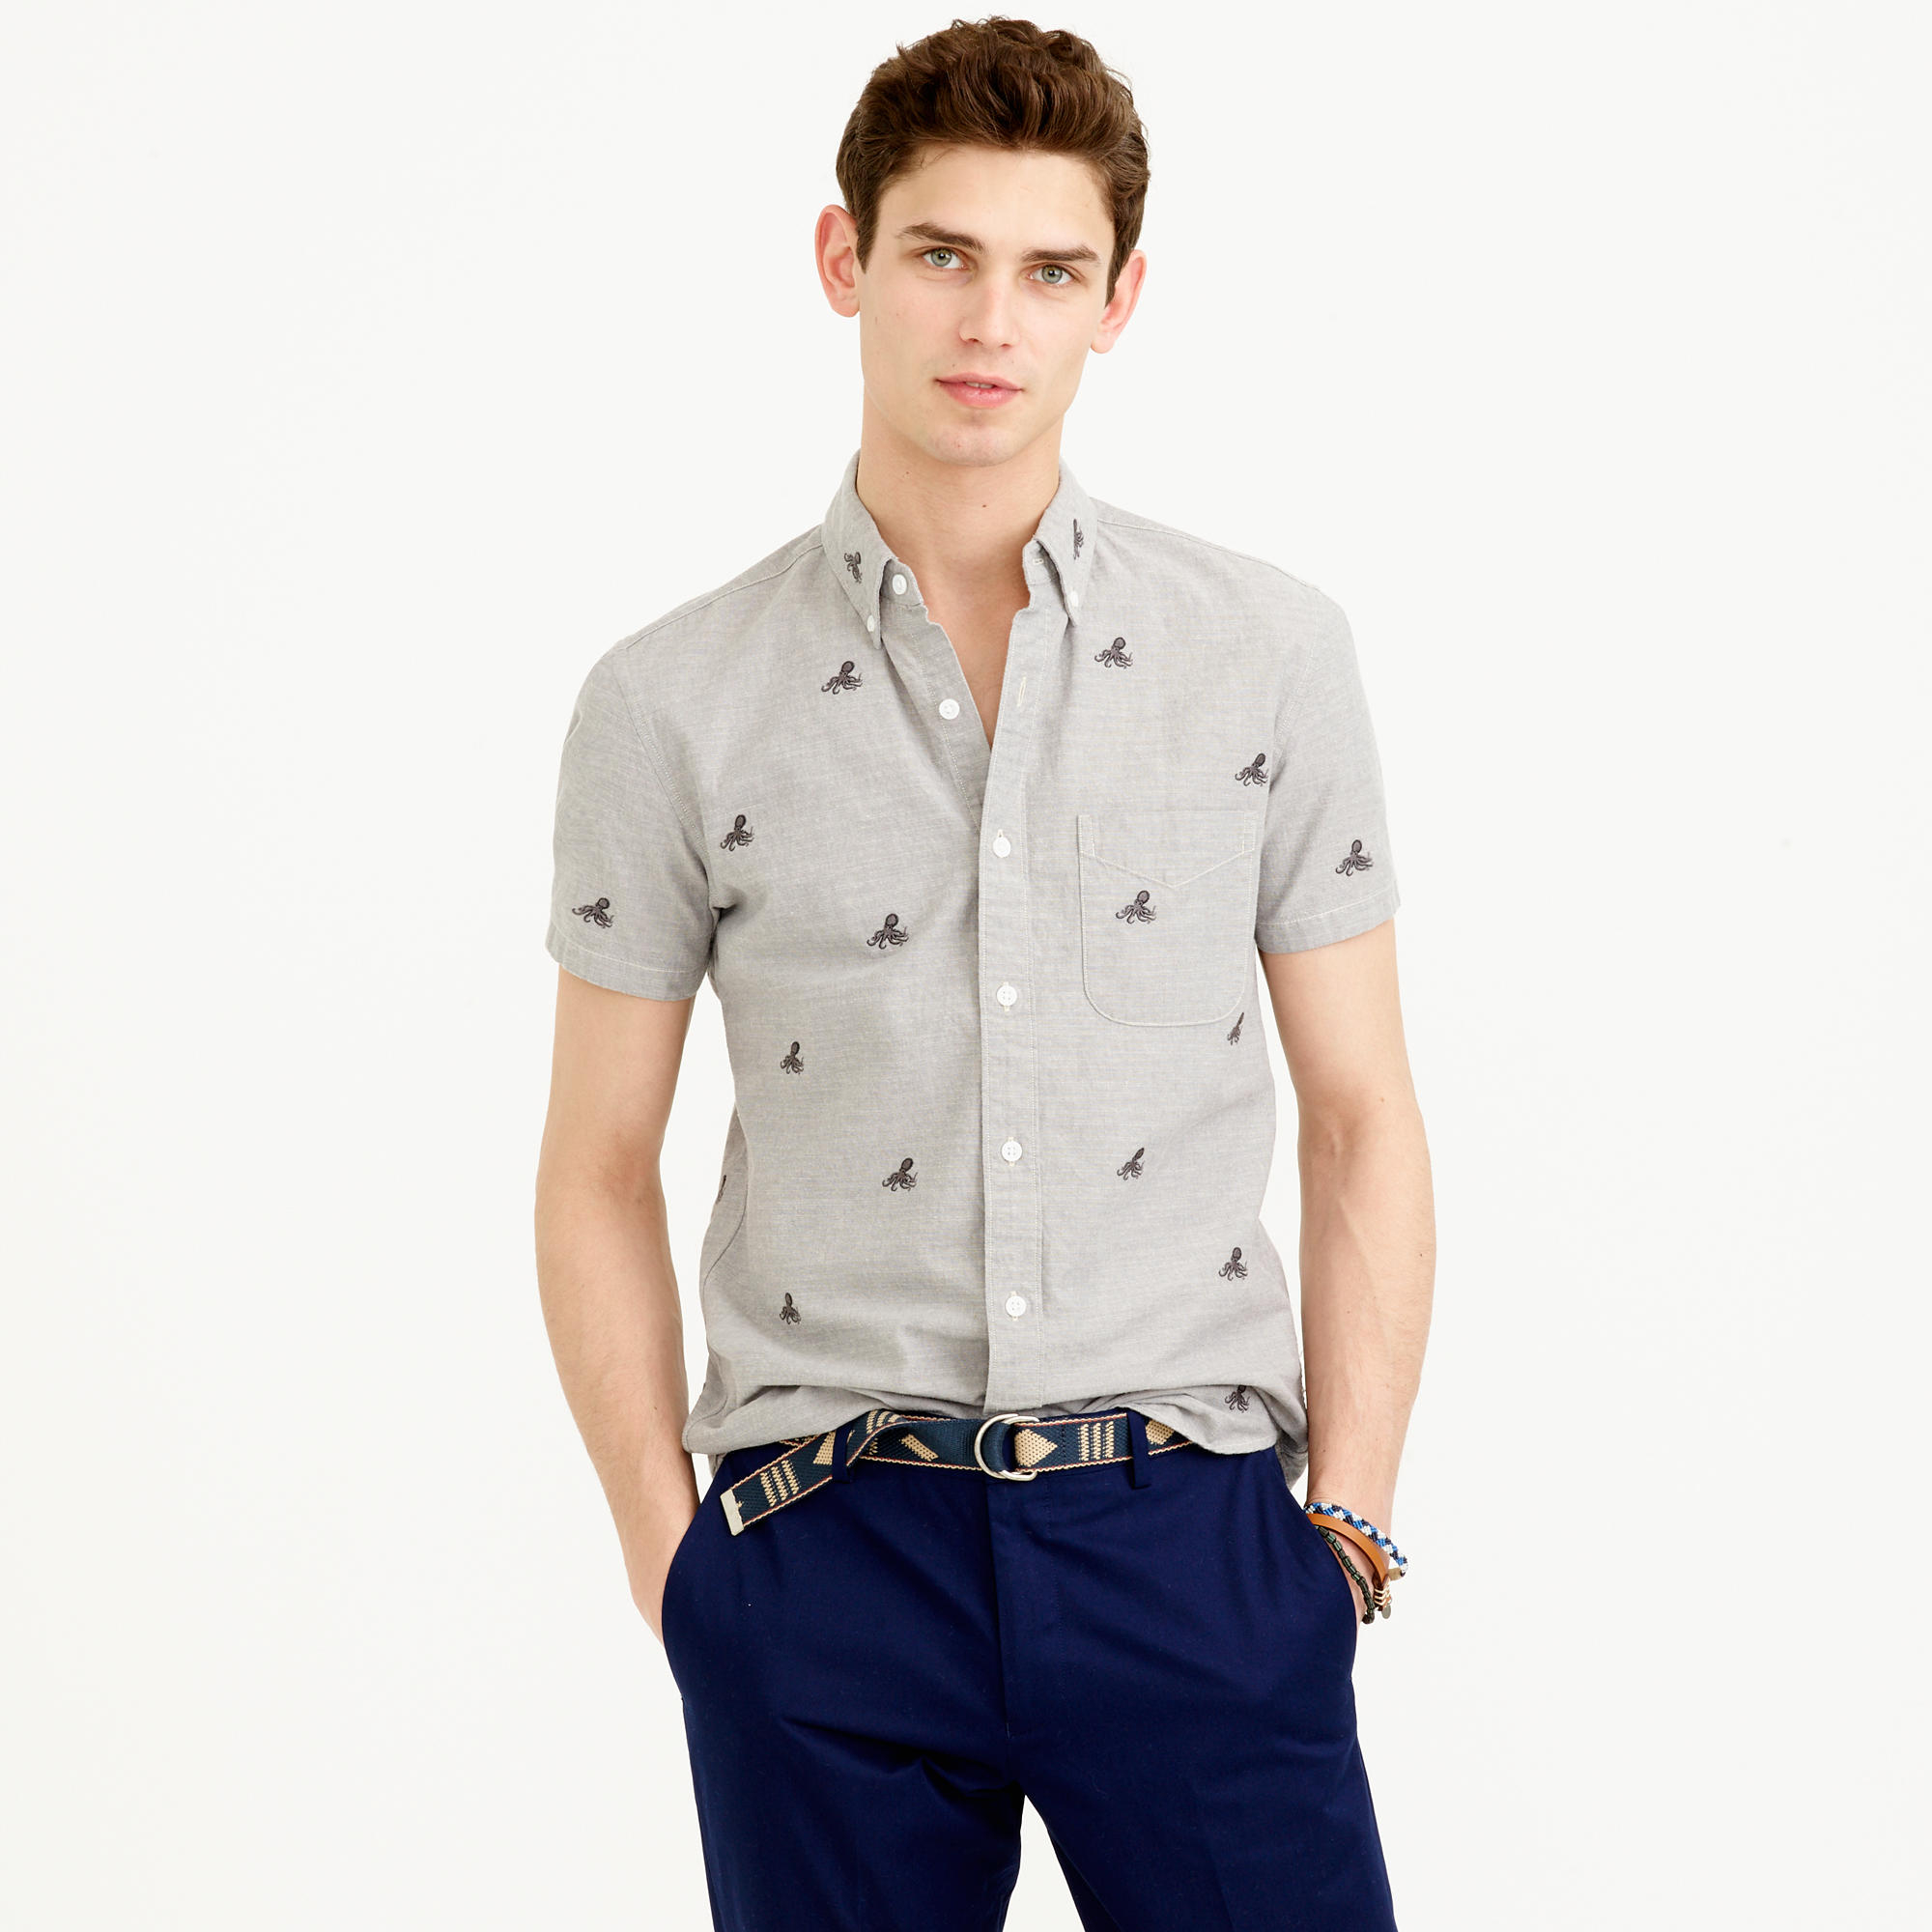 Short Sleeve Chambray Shirt With Embroidered Octopi